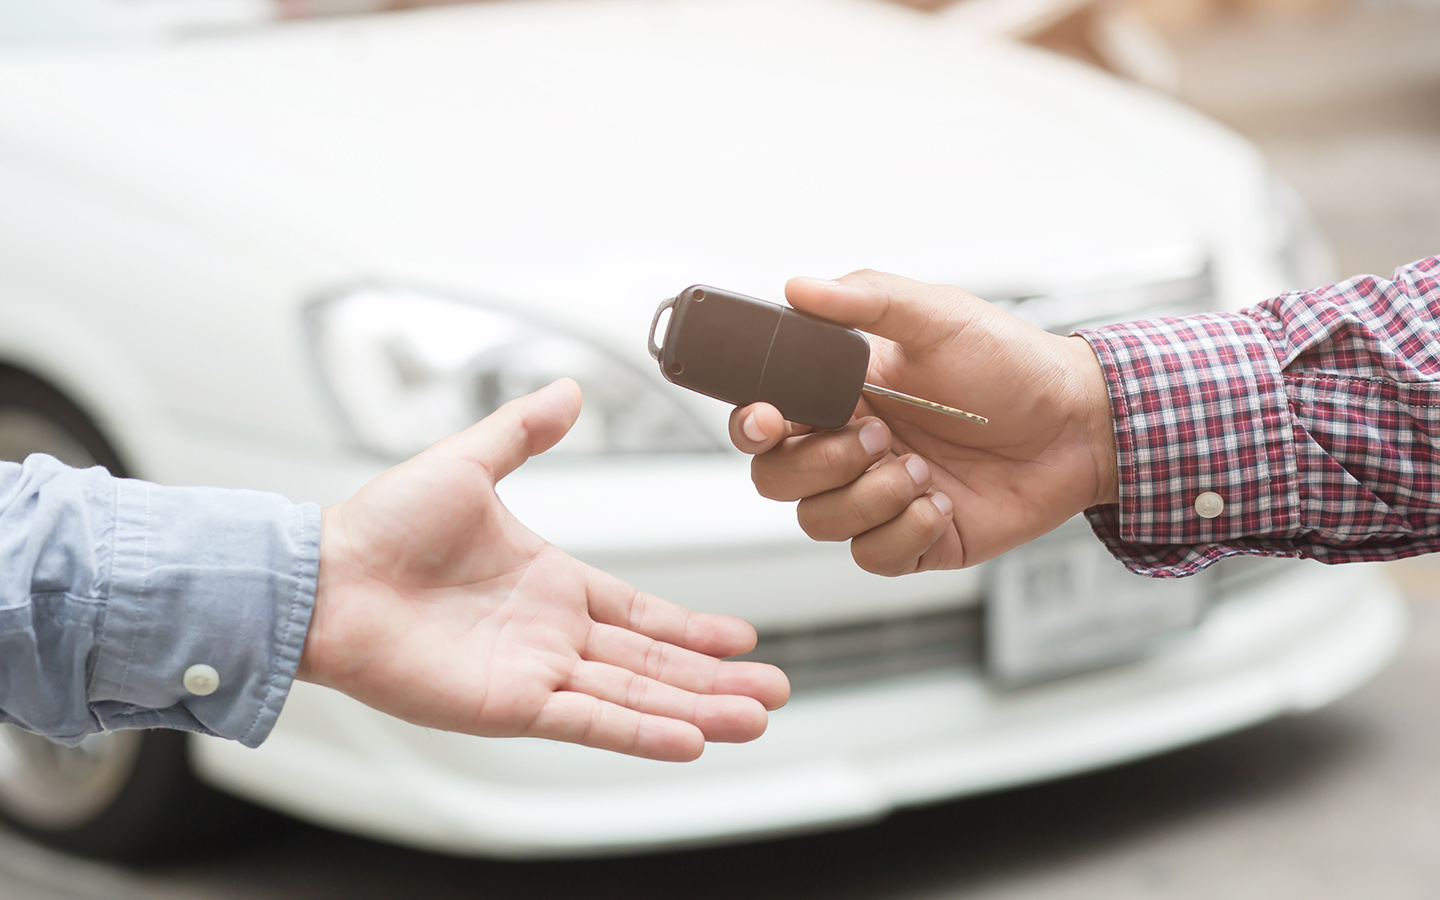 Two hands exchanging car keys